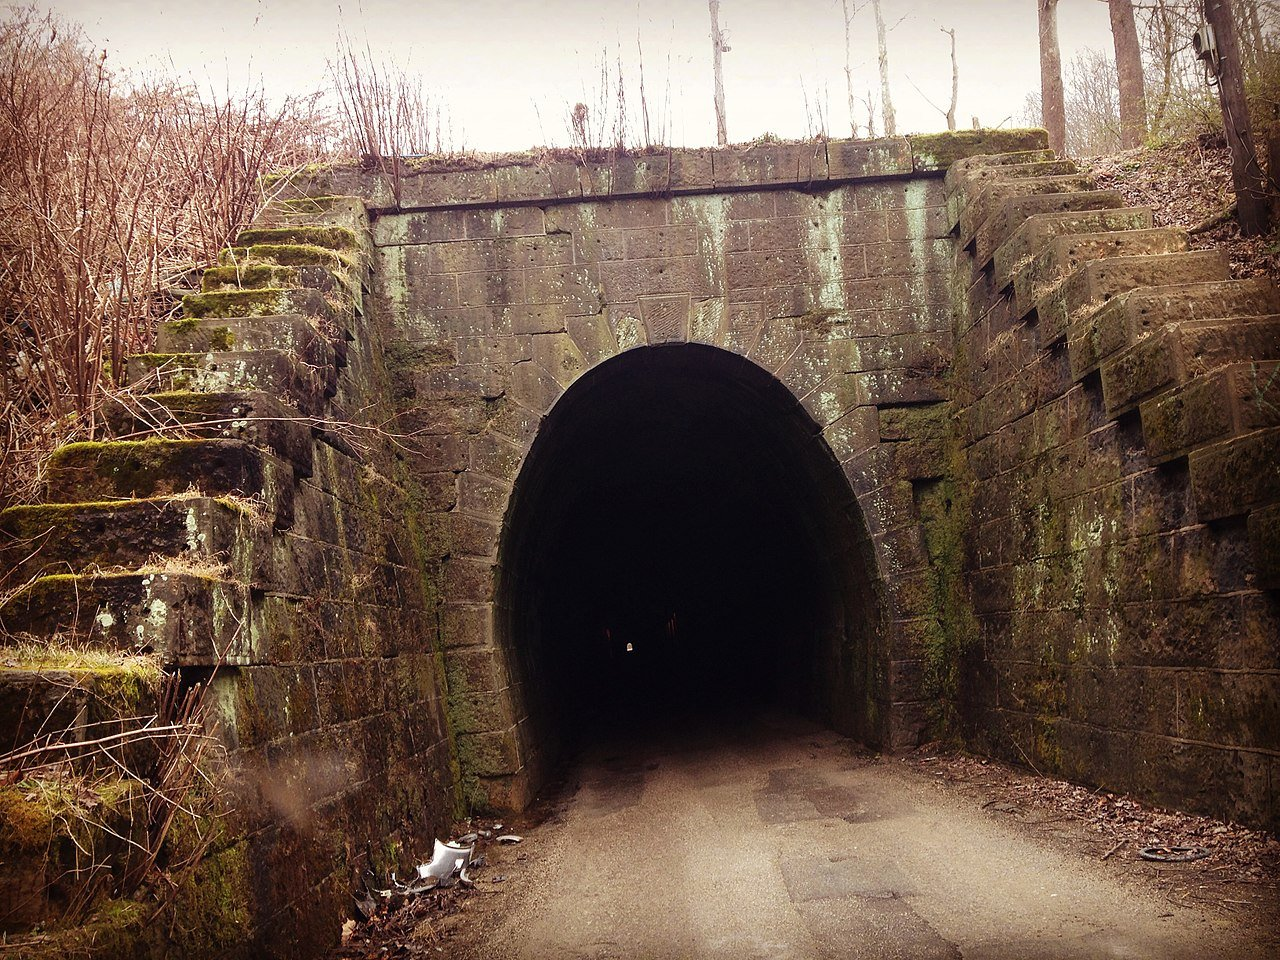 The Dingess Tunnel currently serves as a one-lane road into the community of Dingess. Image obtained from Brandon Ray Kirk, Wikipedia.